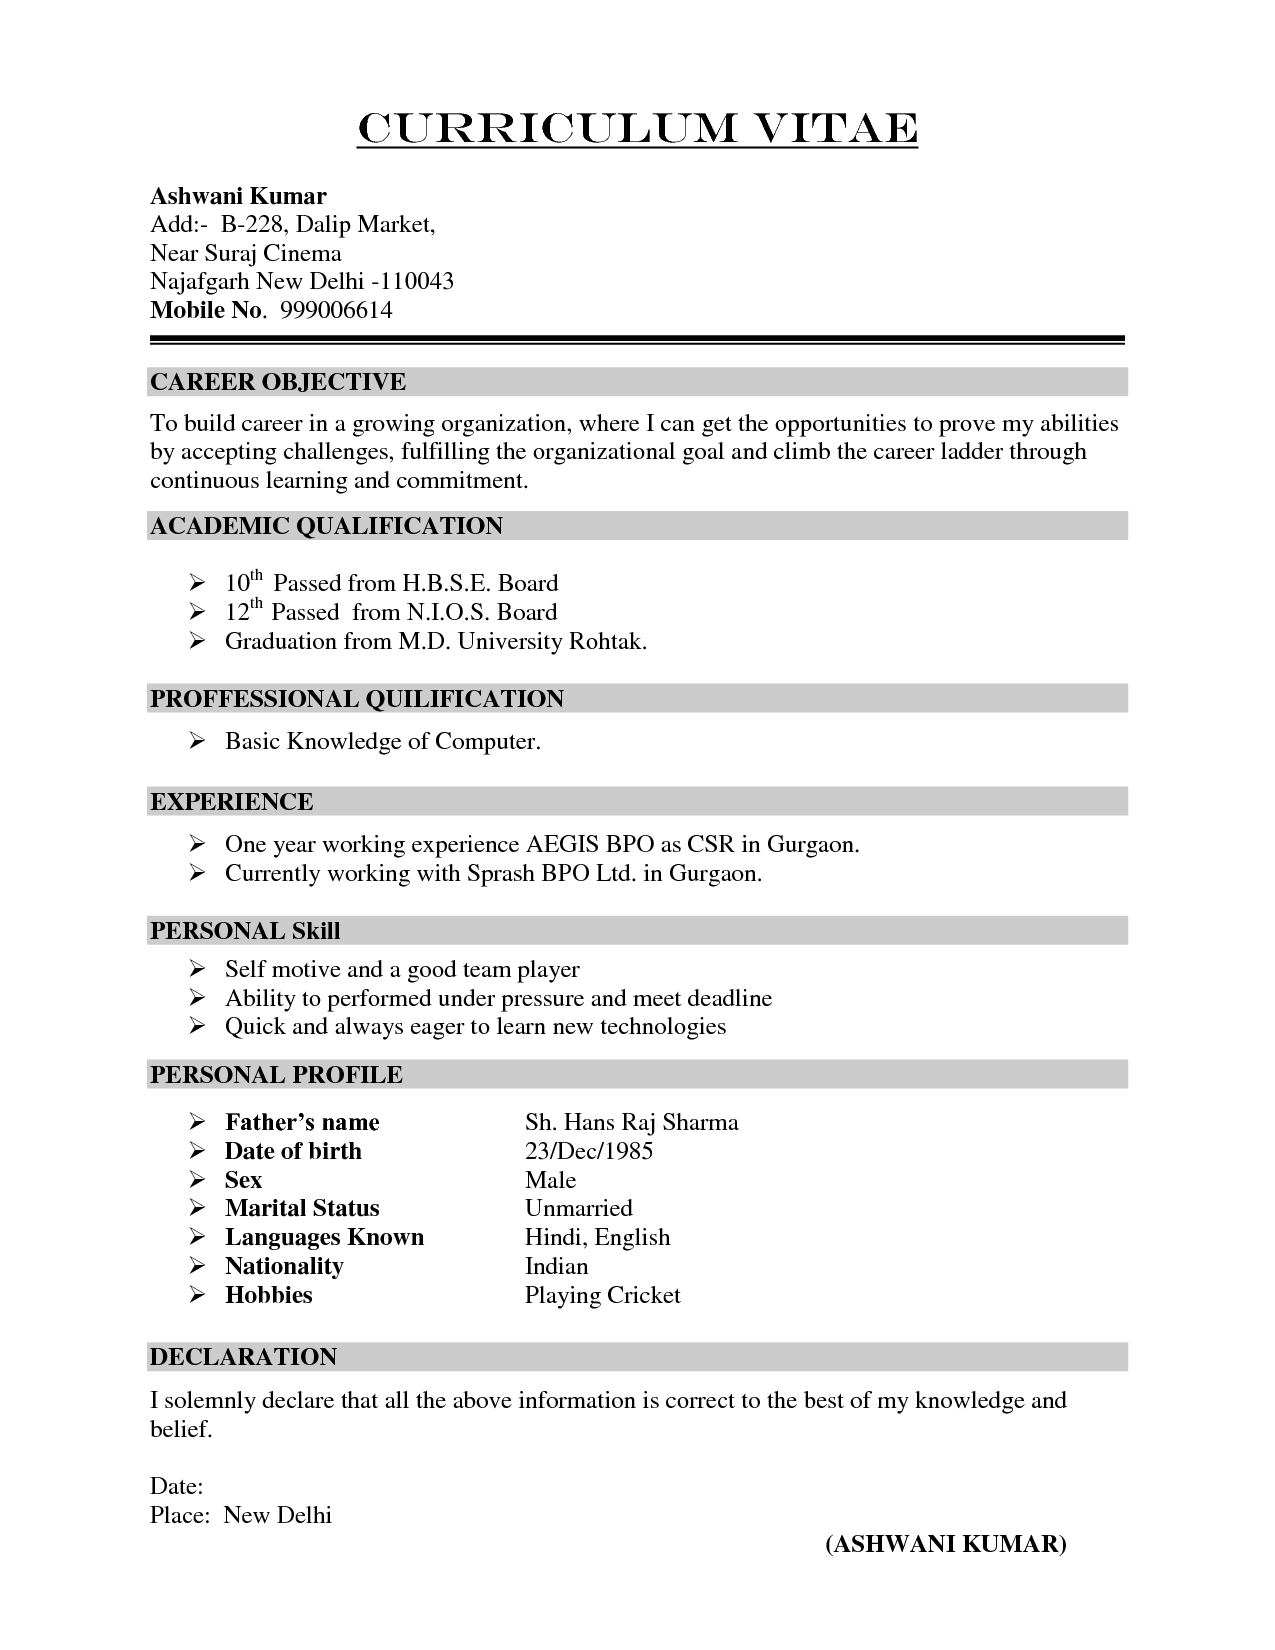 Qualifications For A Resume Examples F Ea A A The Most Resume Resume Formt  Cover Letter Examples  Job Qualifications Sample